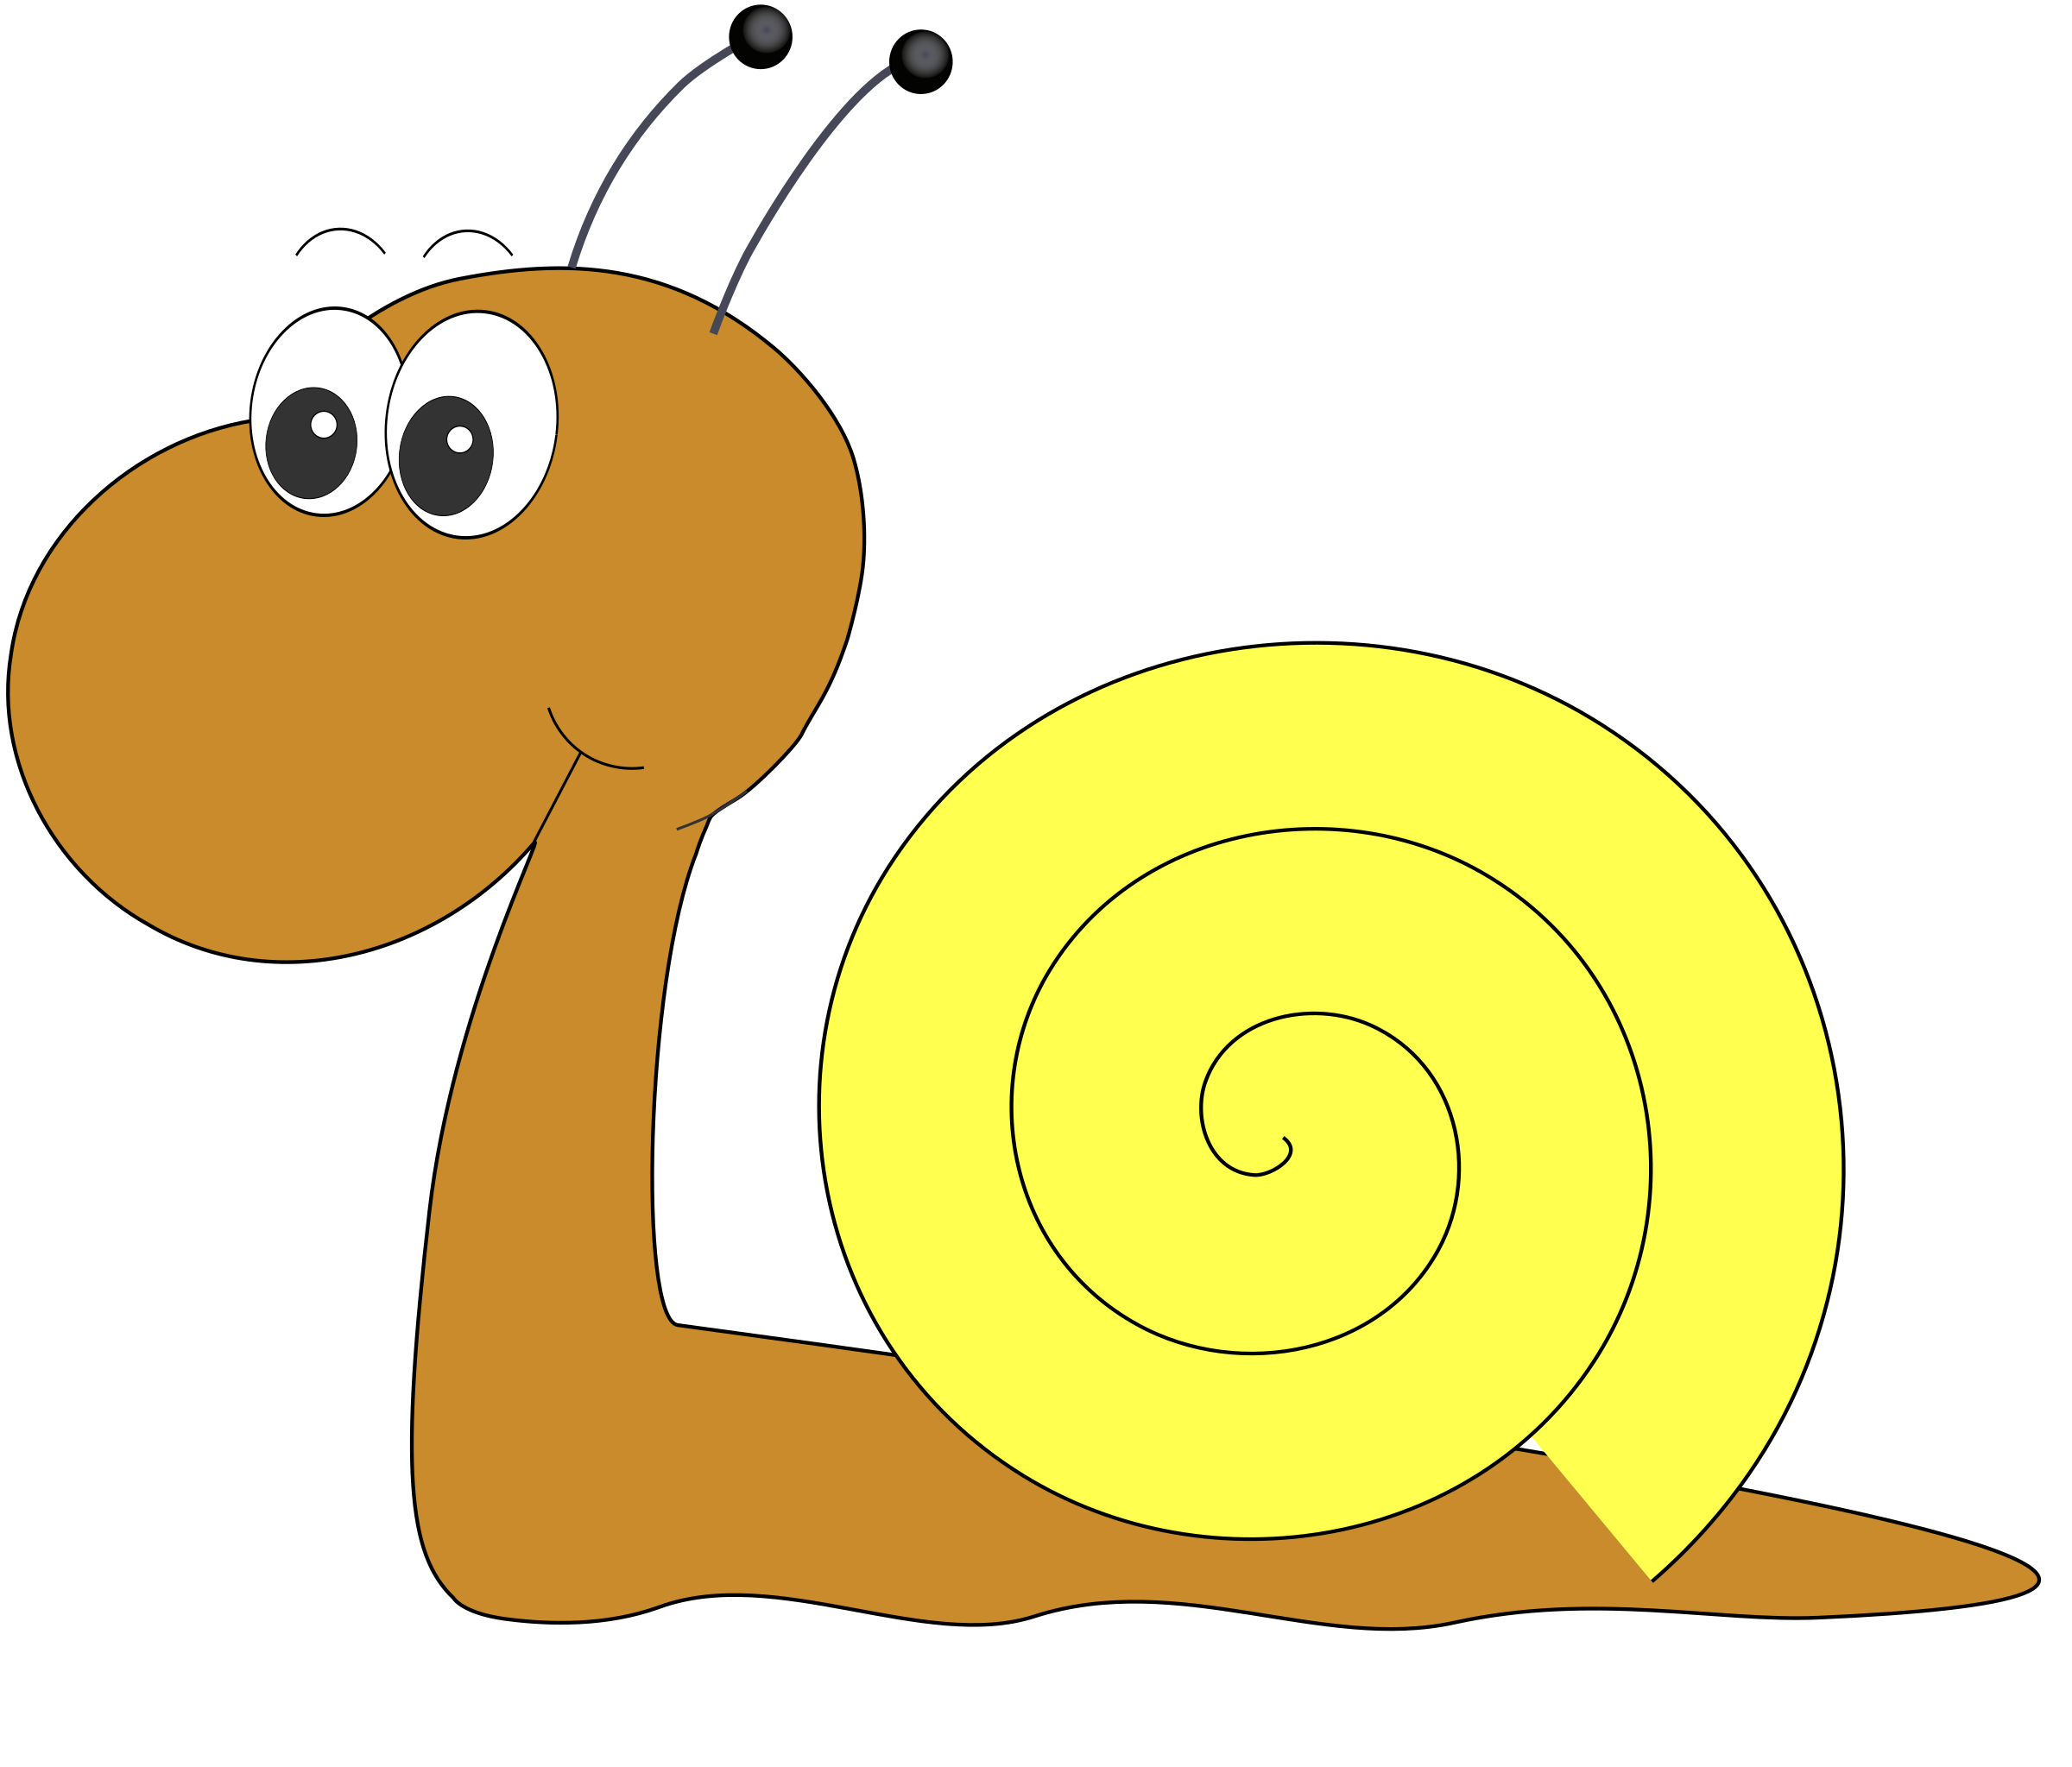 svg black and white library Schnecke by doppelg free. Snail clipart comic